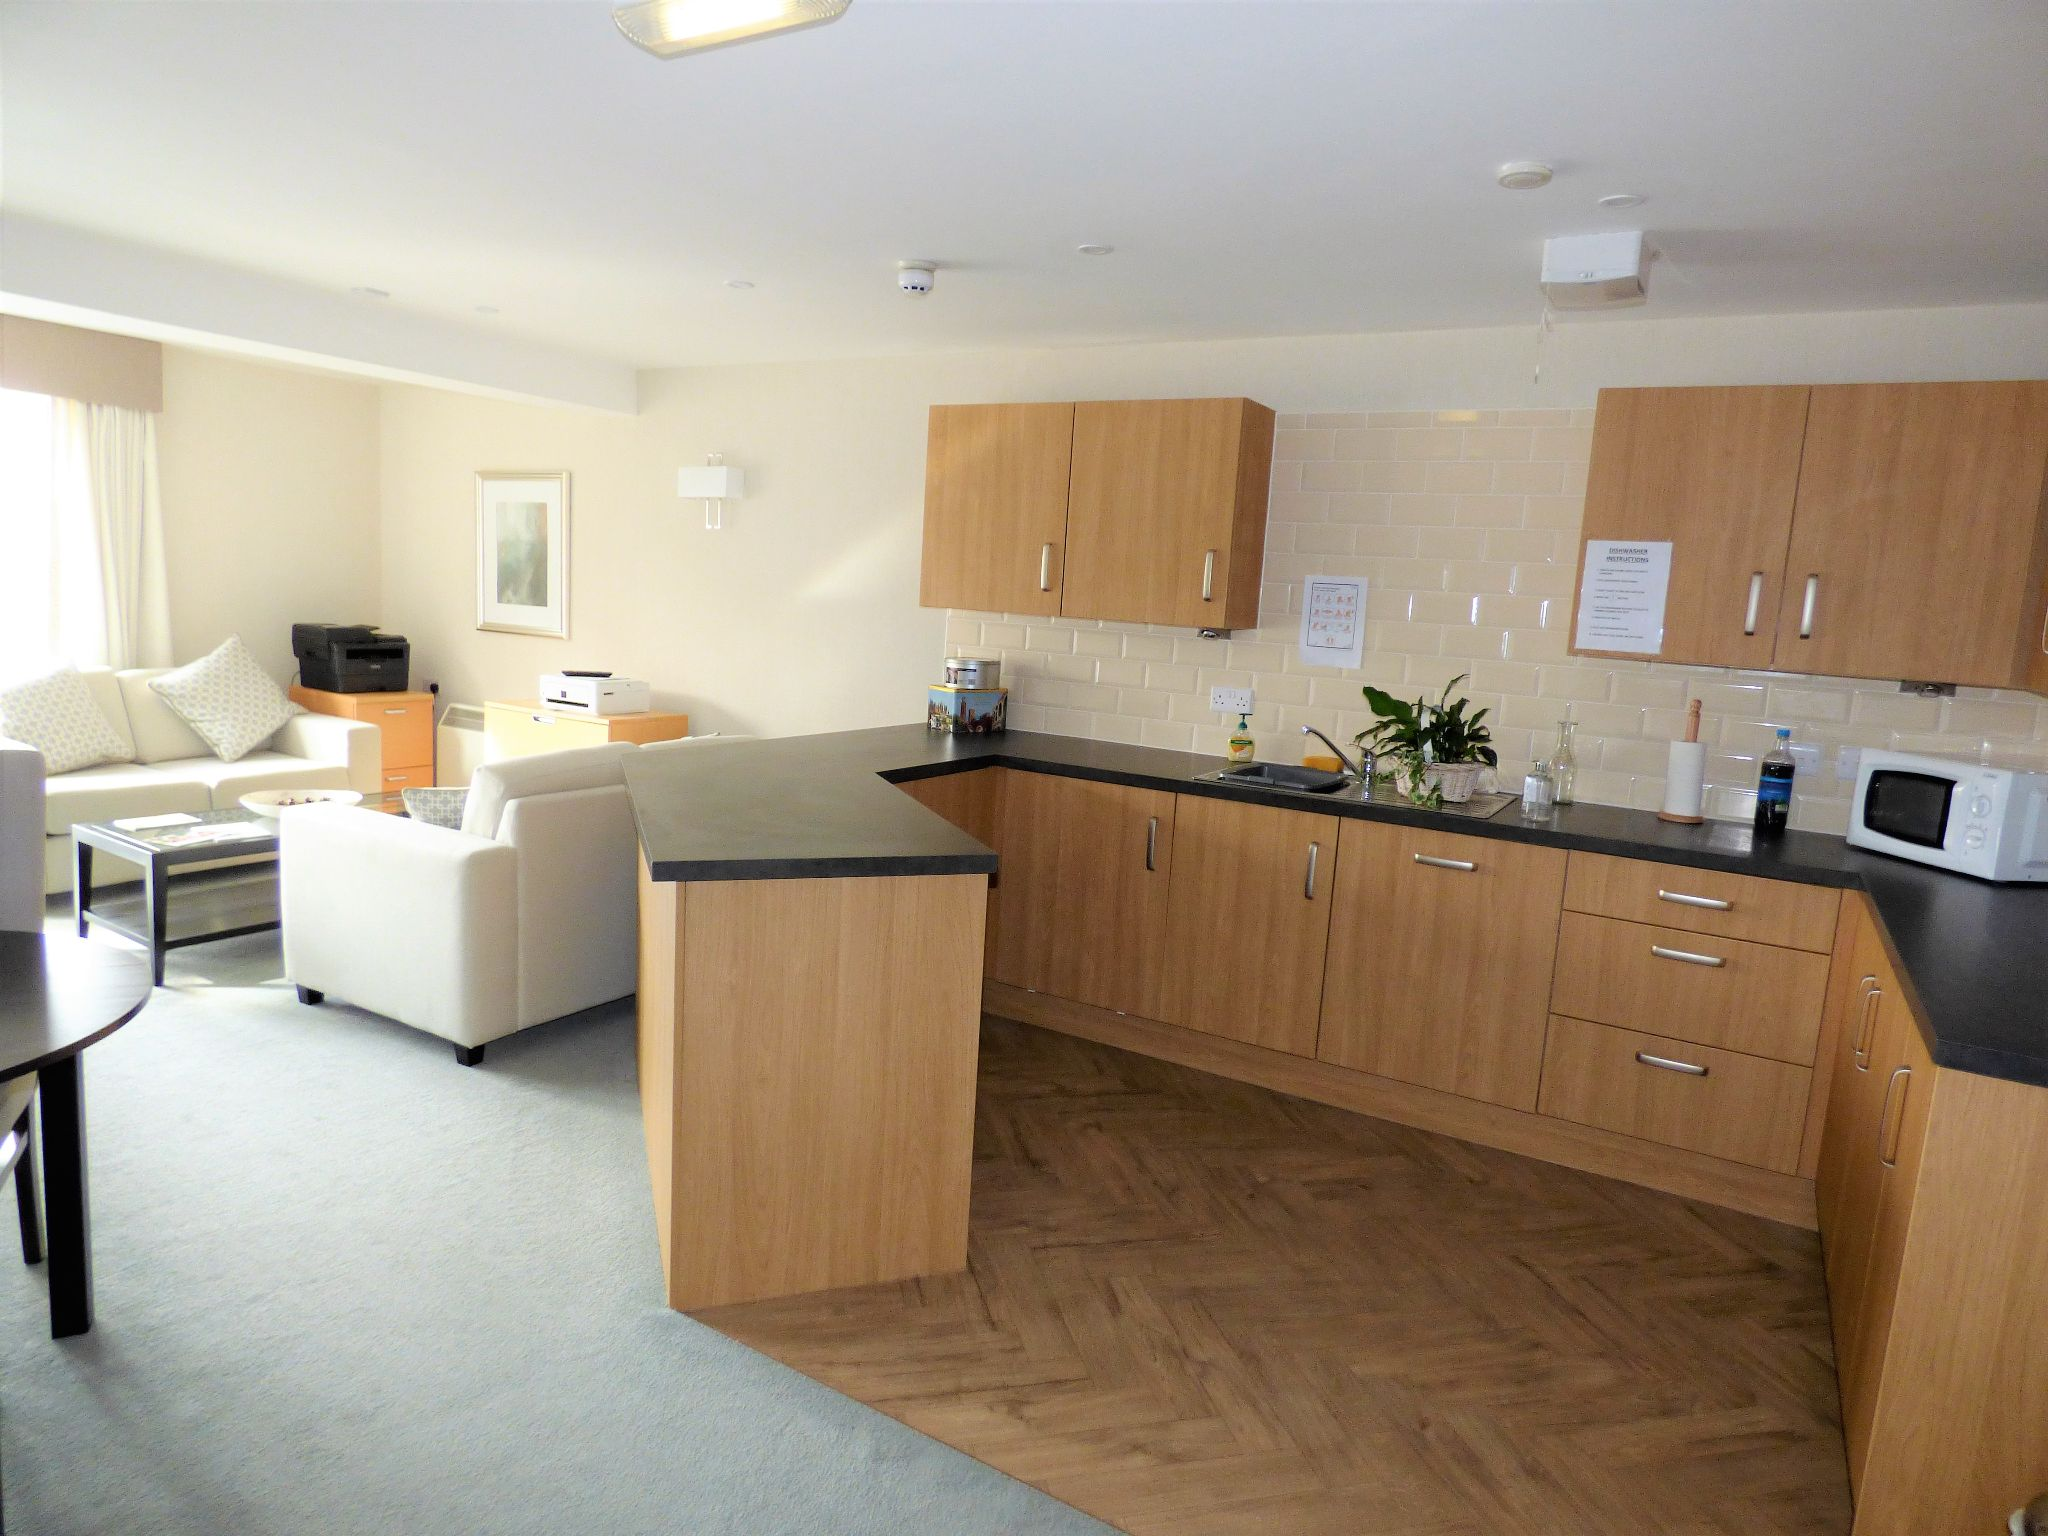 1 Bedroom Apartment Flat/apartment For Sale - Photograph 8